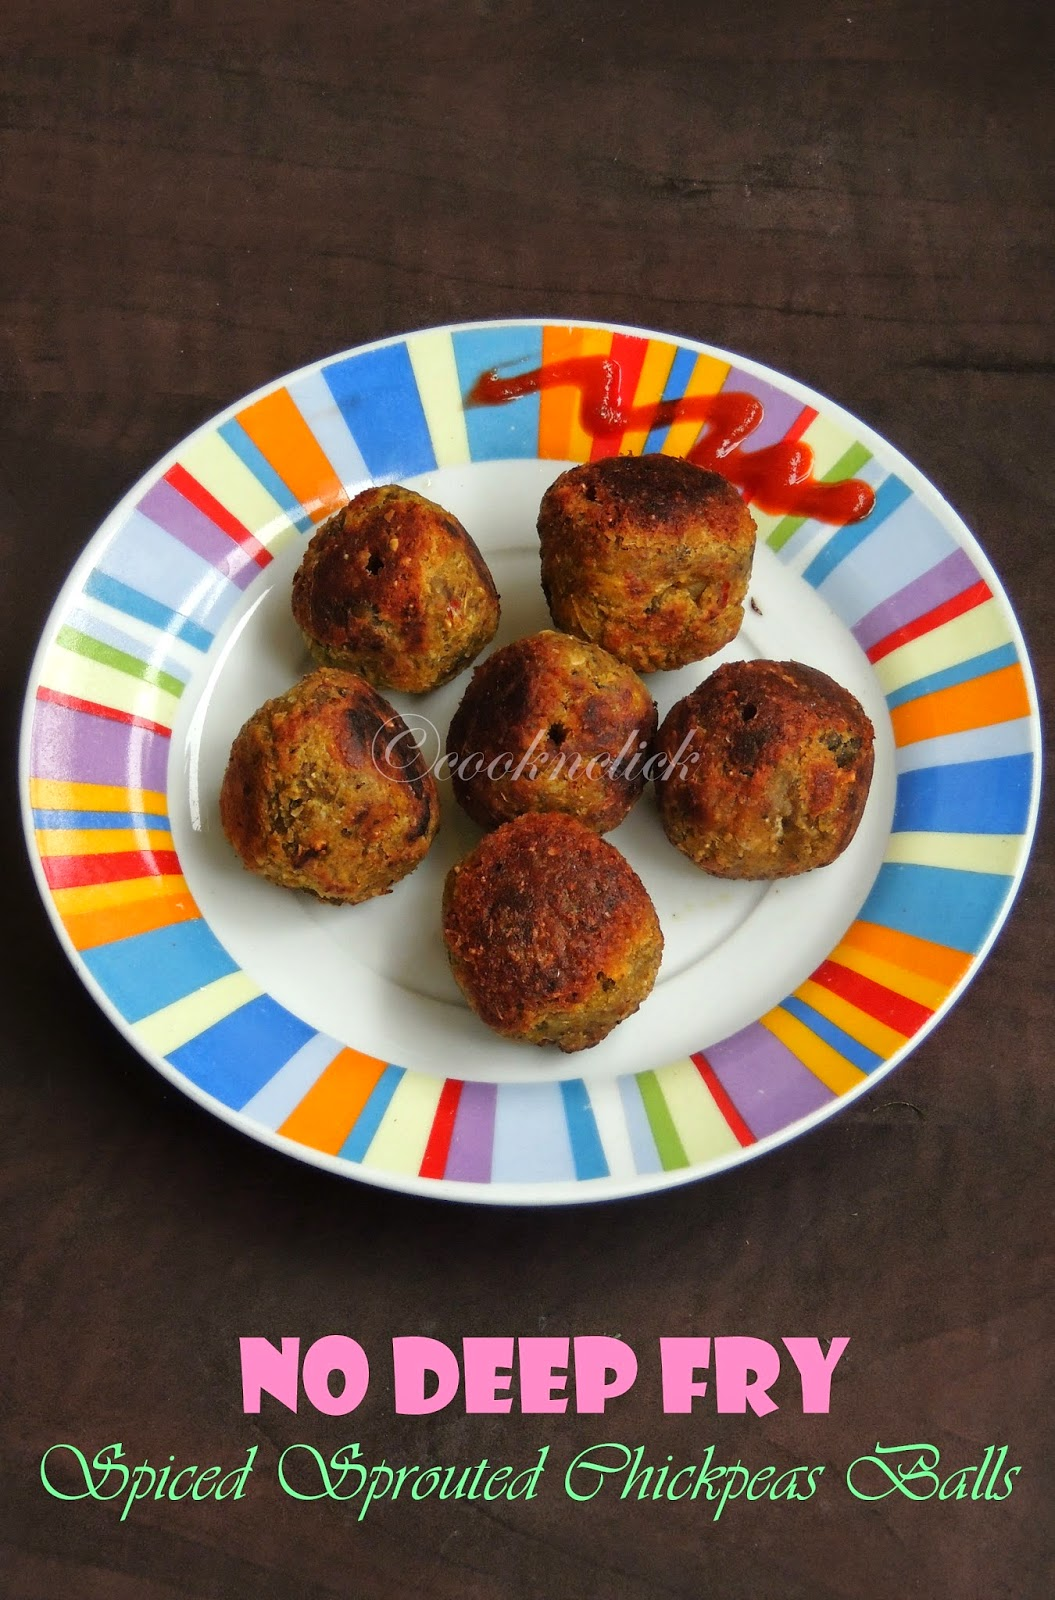 Healthy chickpeas balls, no deepfry Sprouted chickpeas balls